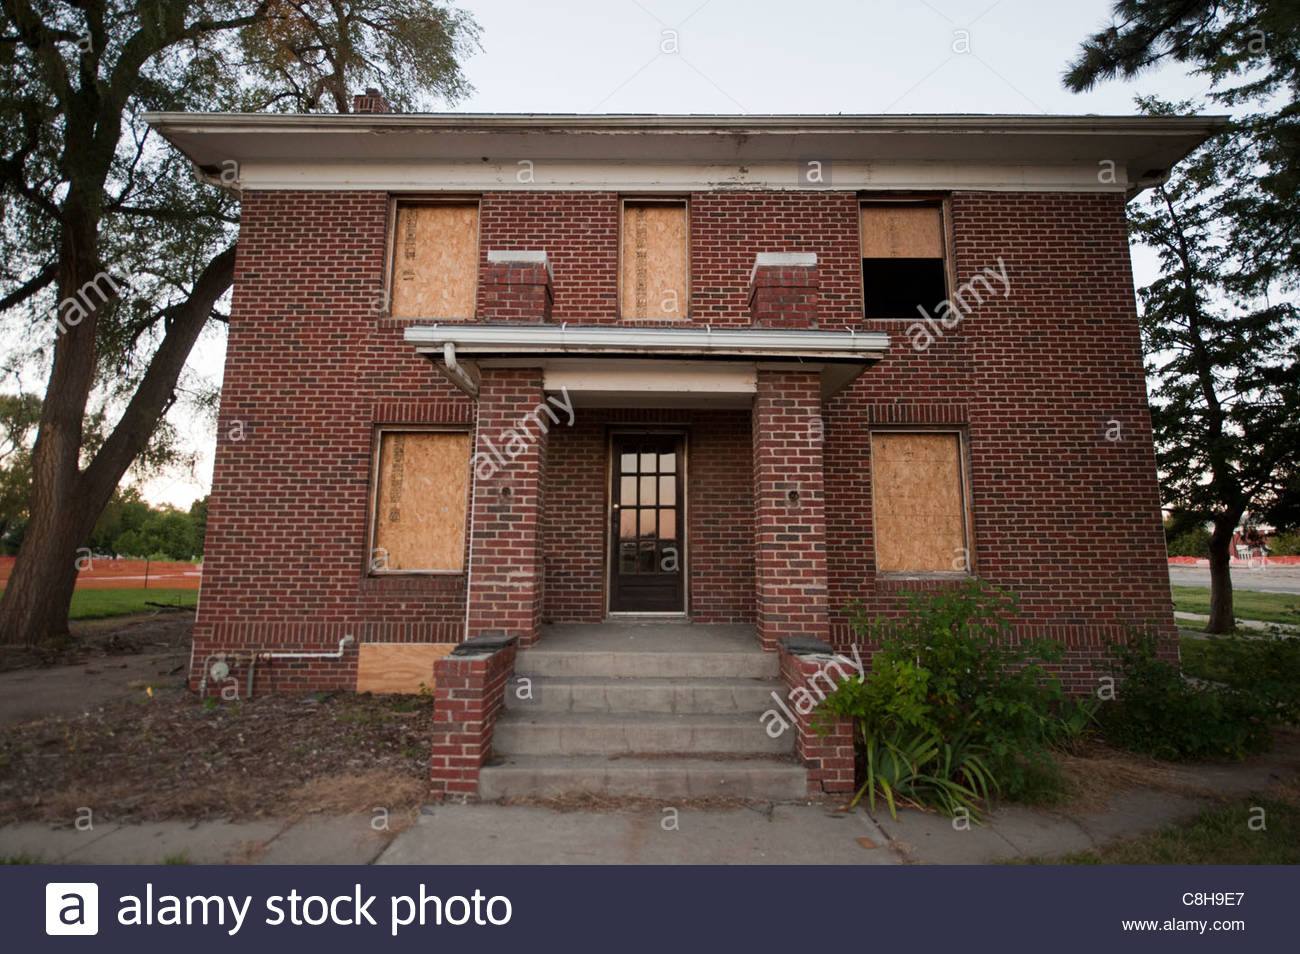 An abandoned home waiting to be demolished in Lincoln, NE. - Stock Image